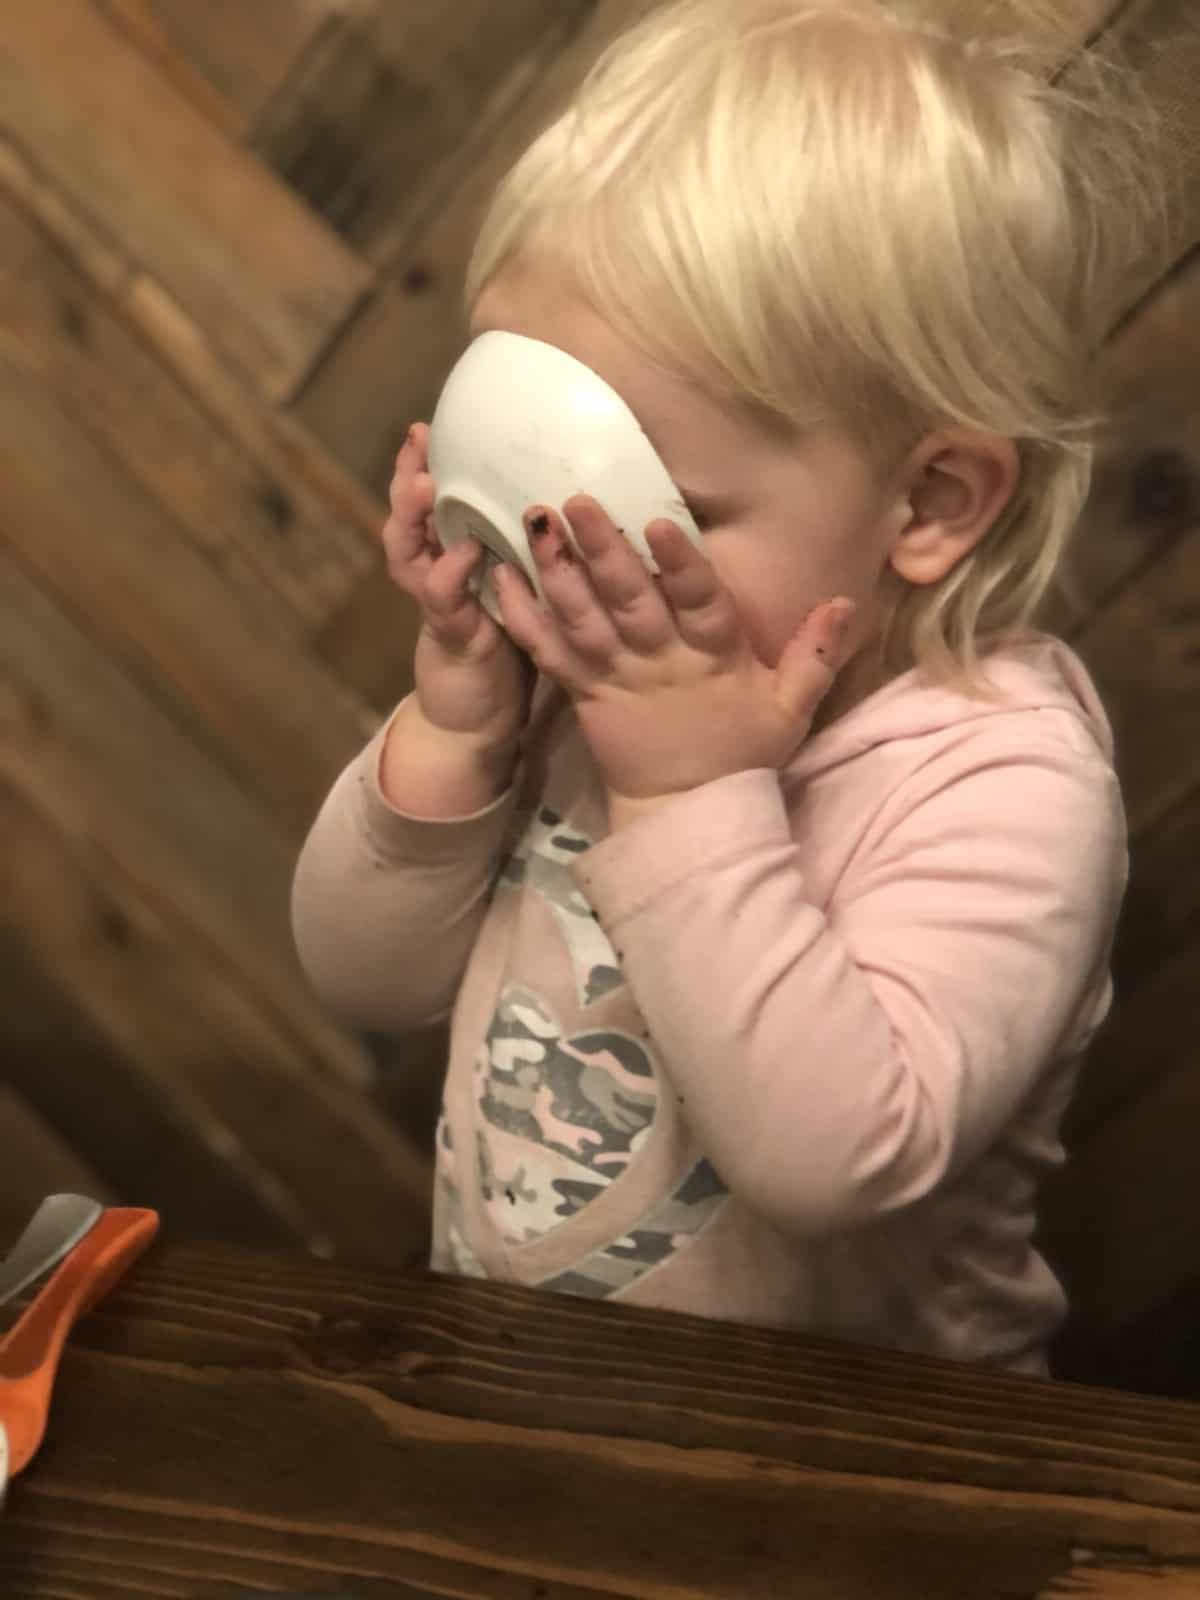 A little girl enjoying her food.